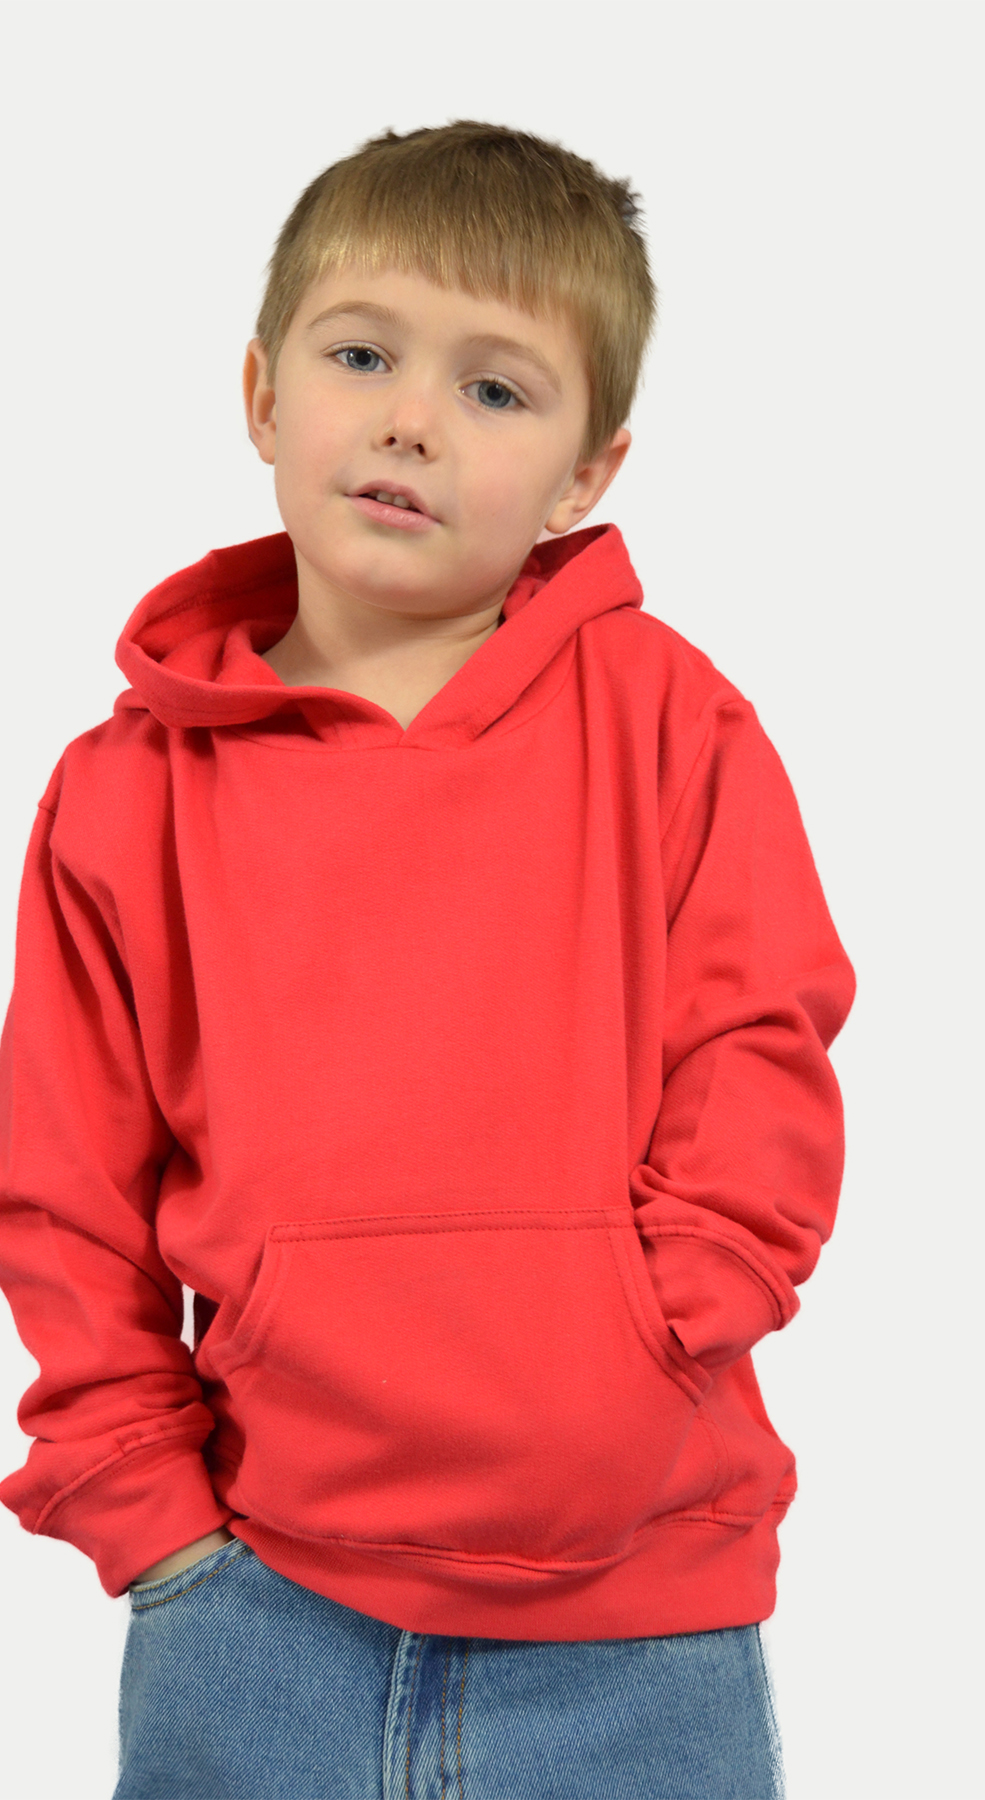 Monag 600003 - Fleece Hooded Pullover